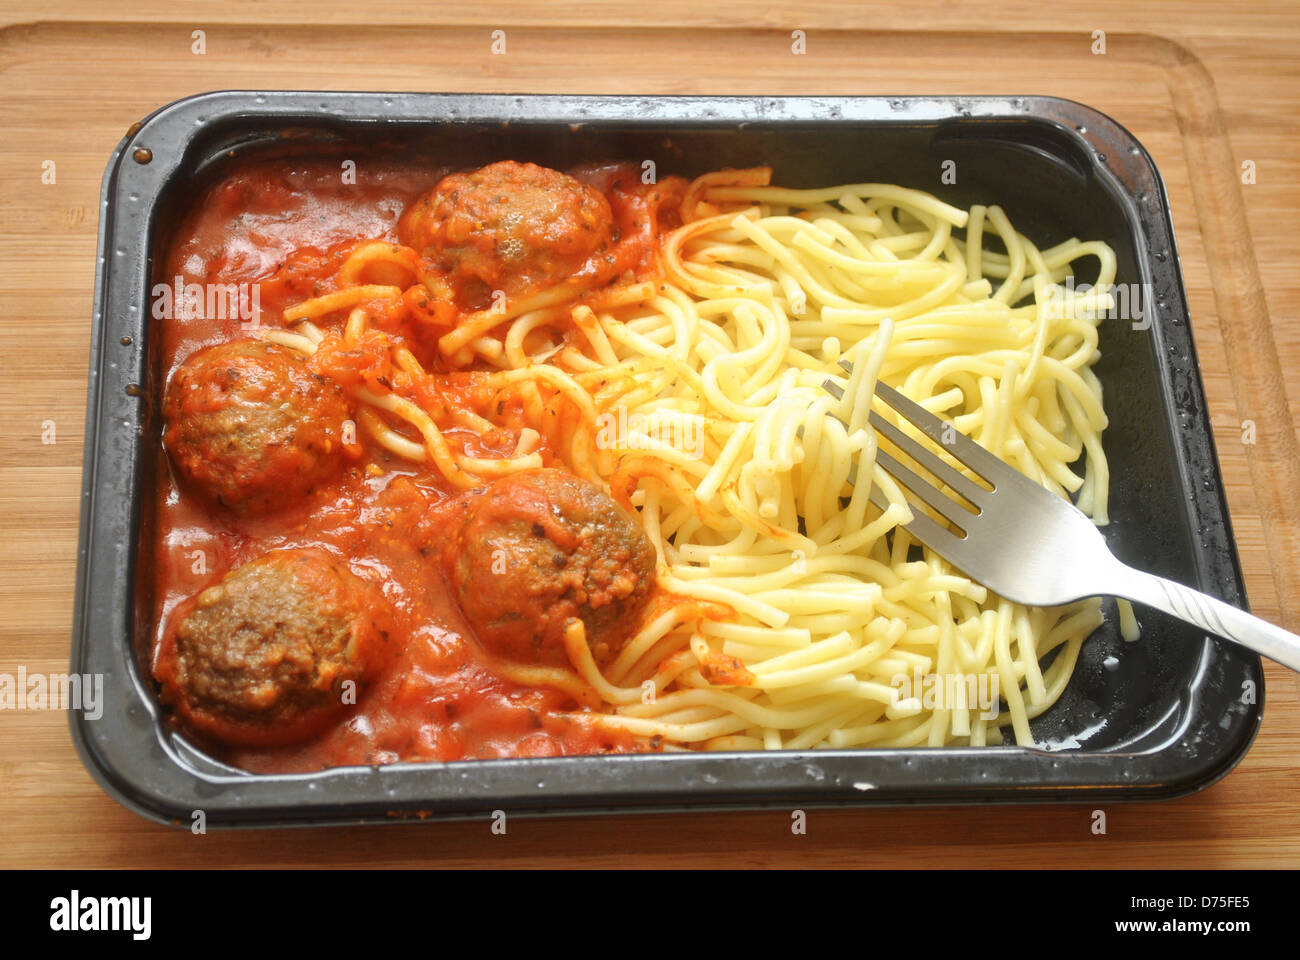 Eating a Spaghetti and Meatball TV Dinner - Stock Image